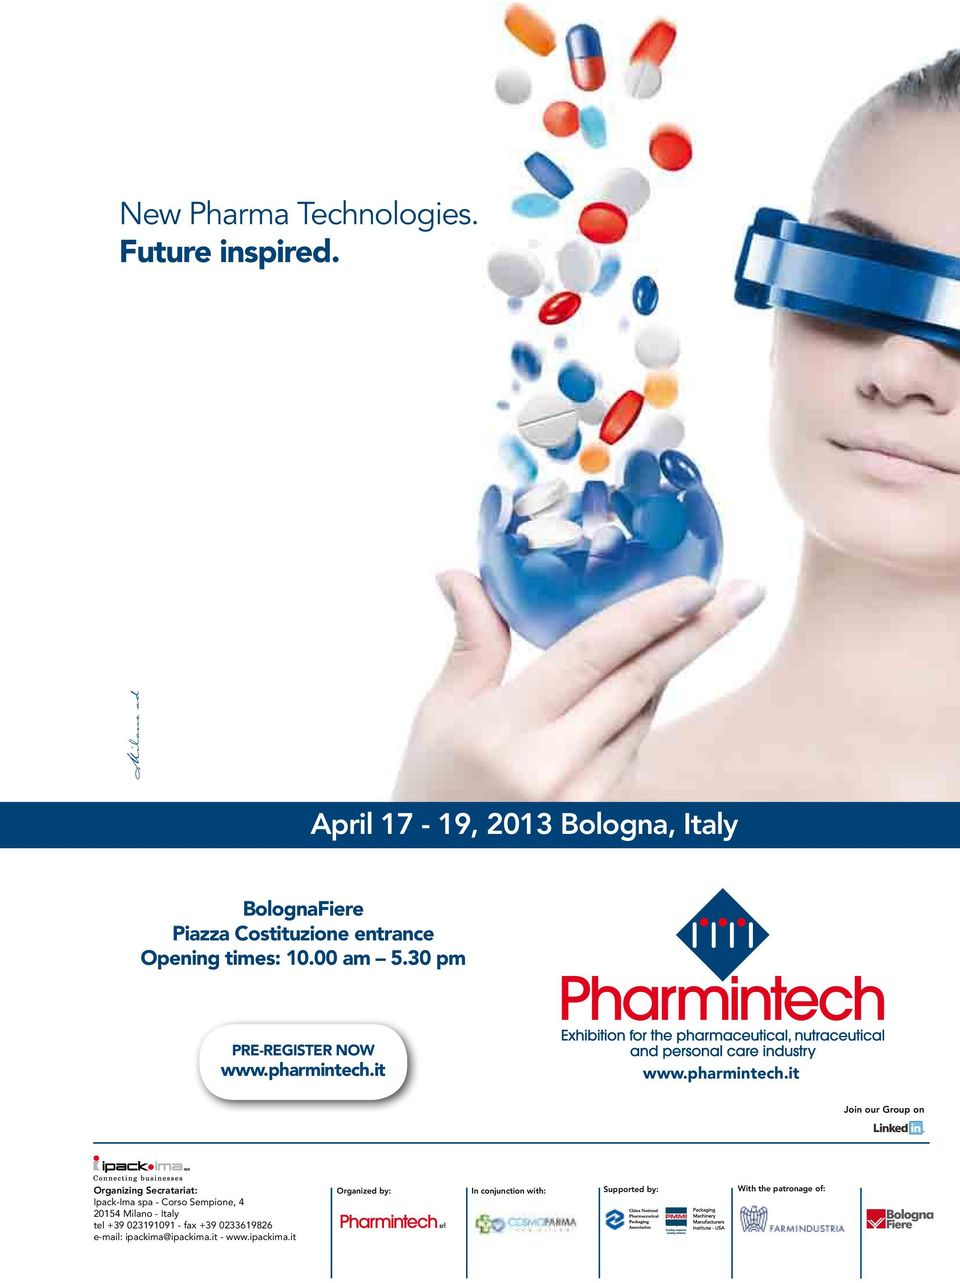 30 pm 10.00 am 5.30 pm Pre-register nowpre-register now www.pharmintech.